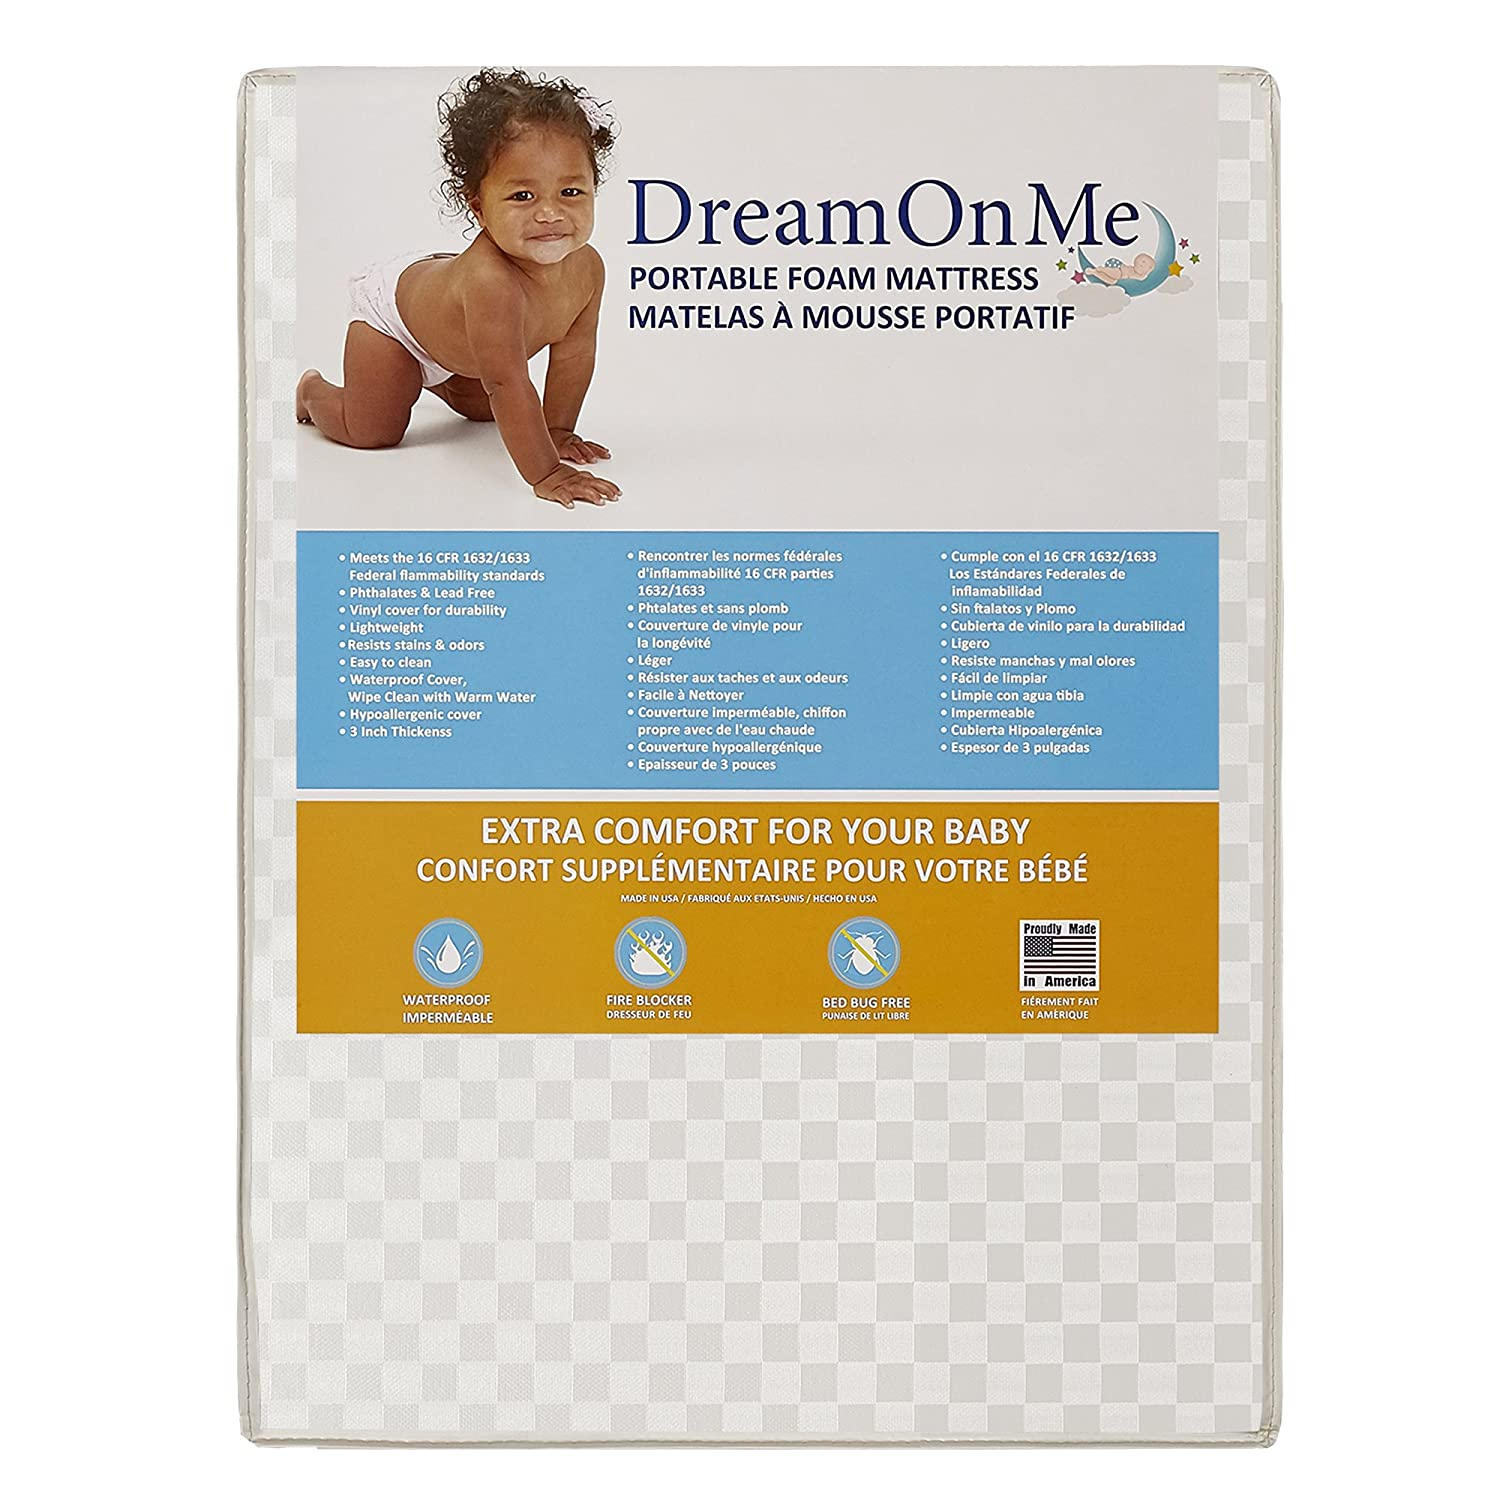 Dream On Me Travel Lite, Mini Foam Playard Mattress with Round Corner 32TL-GR